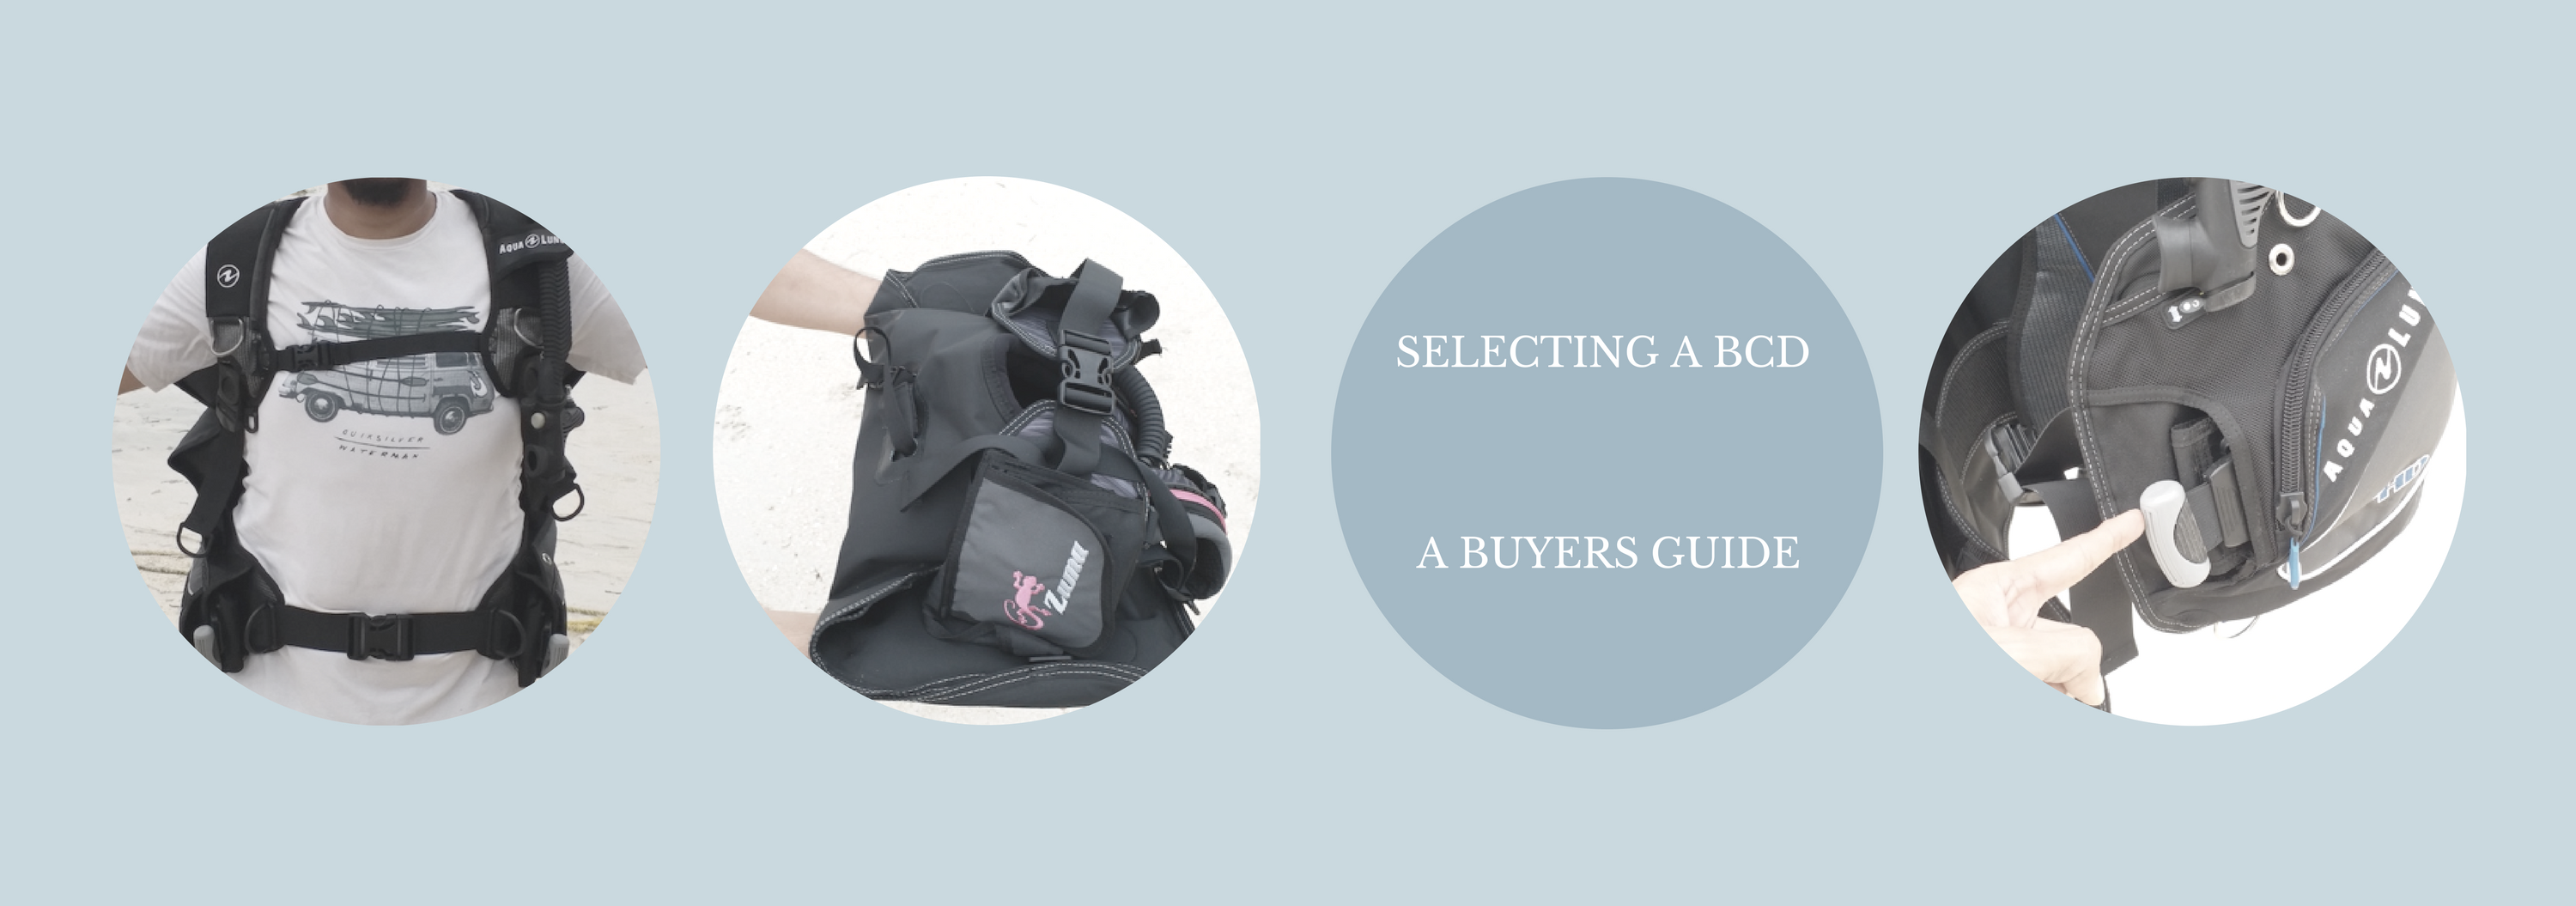 A Buyer's Guide